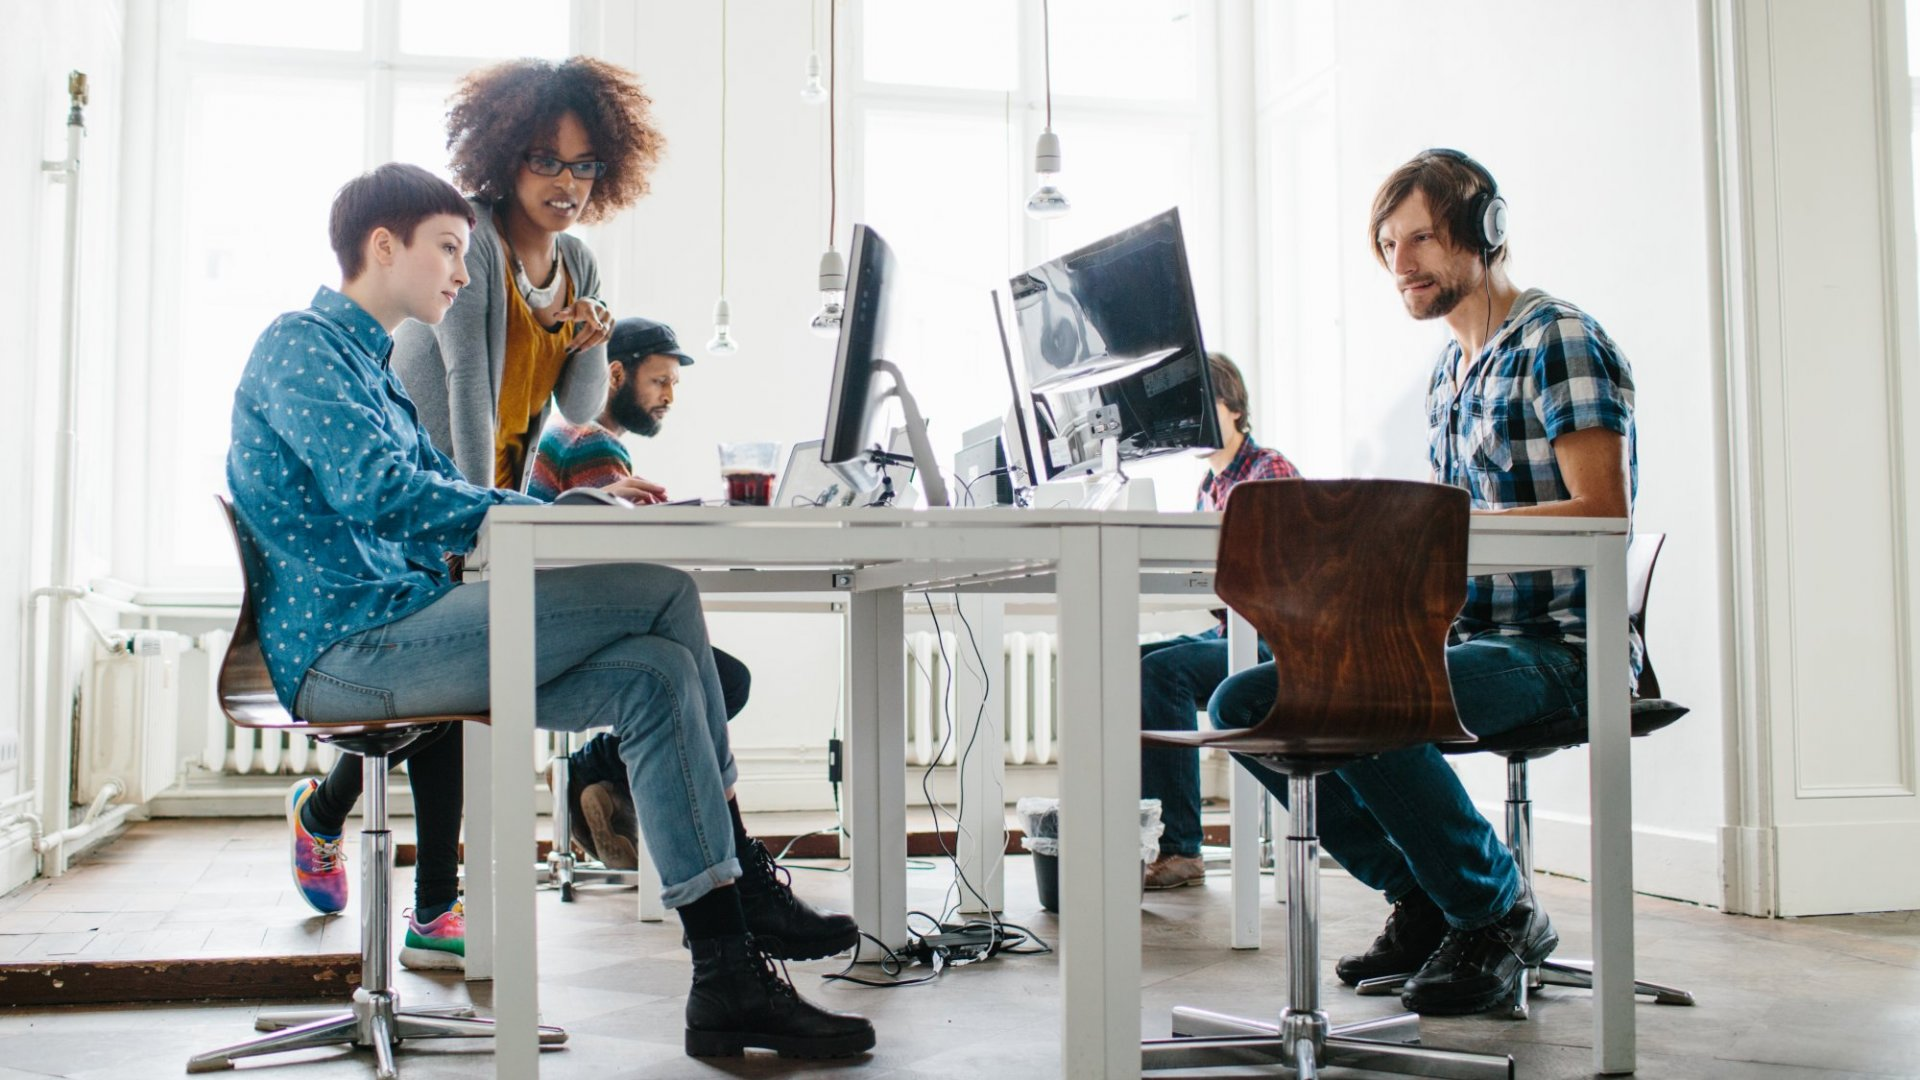 Hire, Train, Retain: What Business Owners Should Understand About Millennials